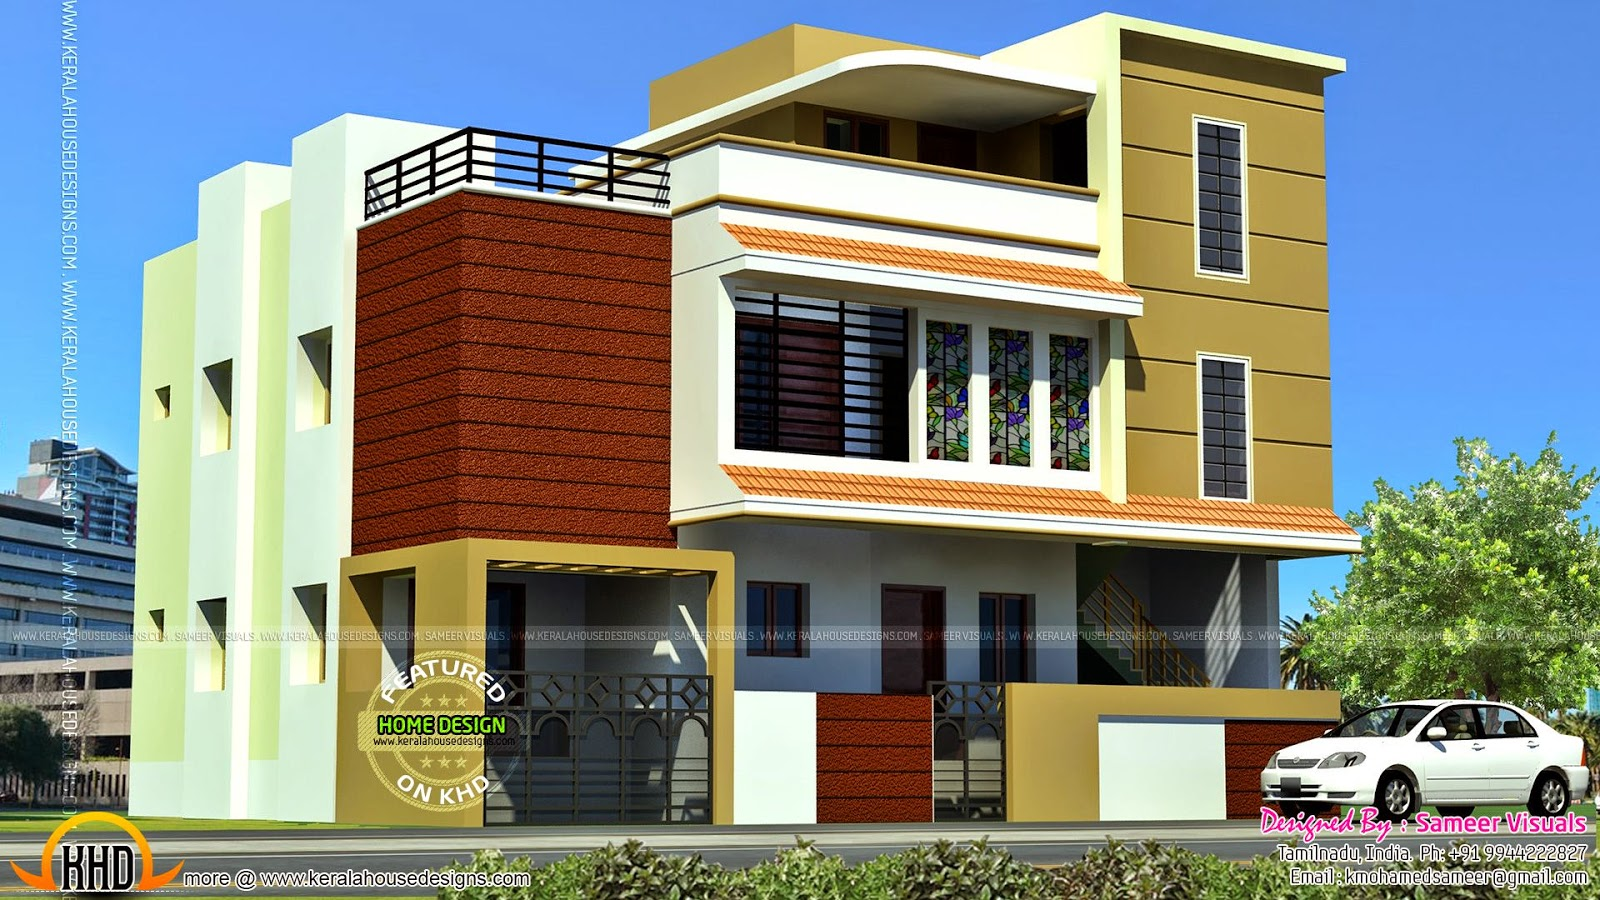 Tamilnadu model house kerala home design and floor plans for Single floor house designs tamilnadu